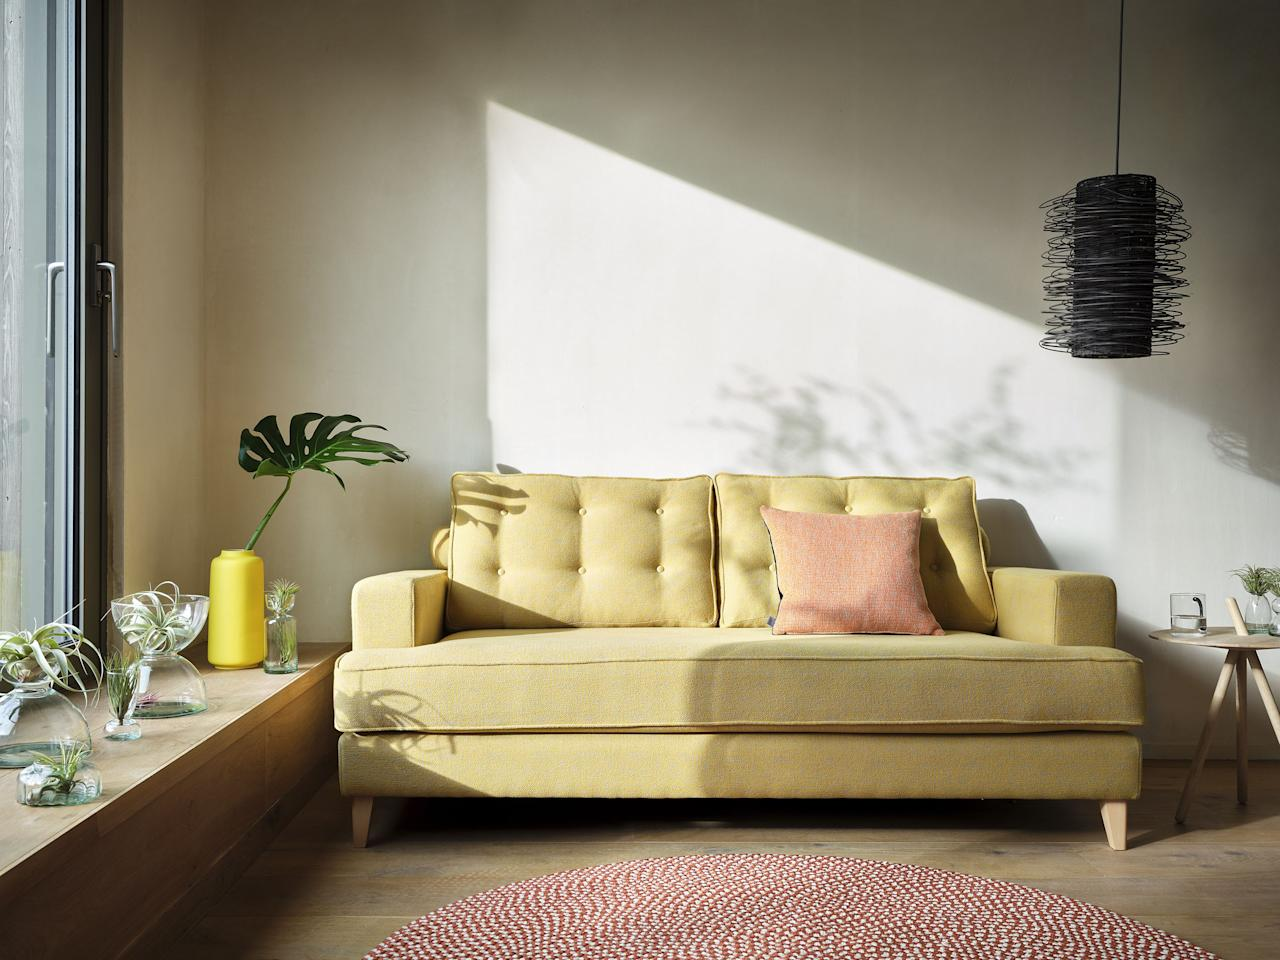 """<p><strong>Sustainability is at the heart of the new <a href=""""https://www.heals.com/"""" target=""""_blank"""">Heal's</a> spring/summer 2020 homeware range. Featuring furniture and accessories made from recycled fabrics, carefully-sourced materials and energy efficient lighting, it's their most eco-friendly collection to date. </strong></p><p>With planet-friendly products at the forefront of many consumers' minds, this new collection is an exciting way for shoppers to purchase stylish yet sustainable items. Take a look at some of our favourites... </p>"""